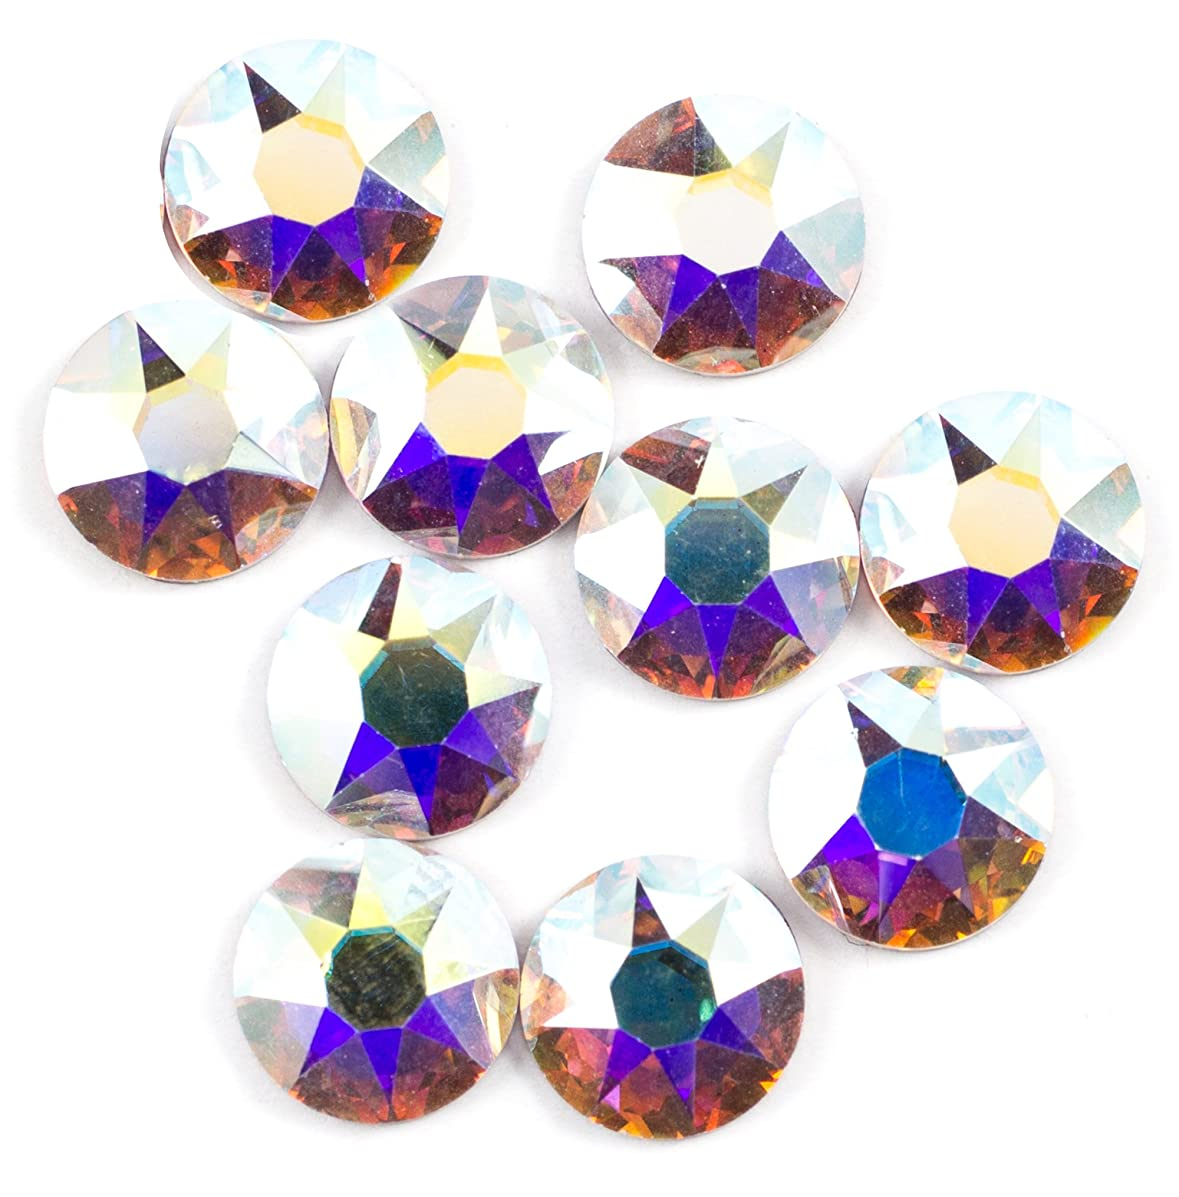 Swarovski - Create Your Style Flatback 6mm Crystal AB 3 packages of 10 Piece (30 Total Crystals)